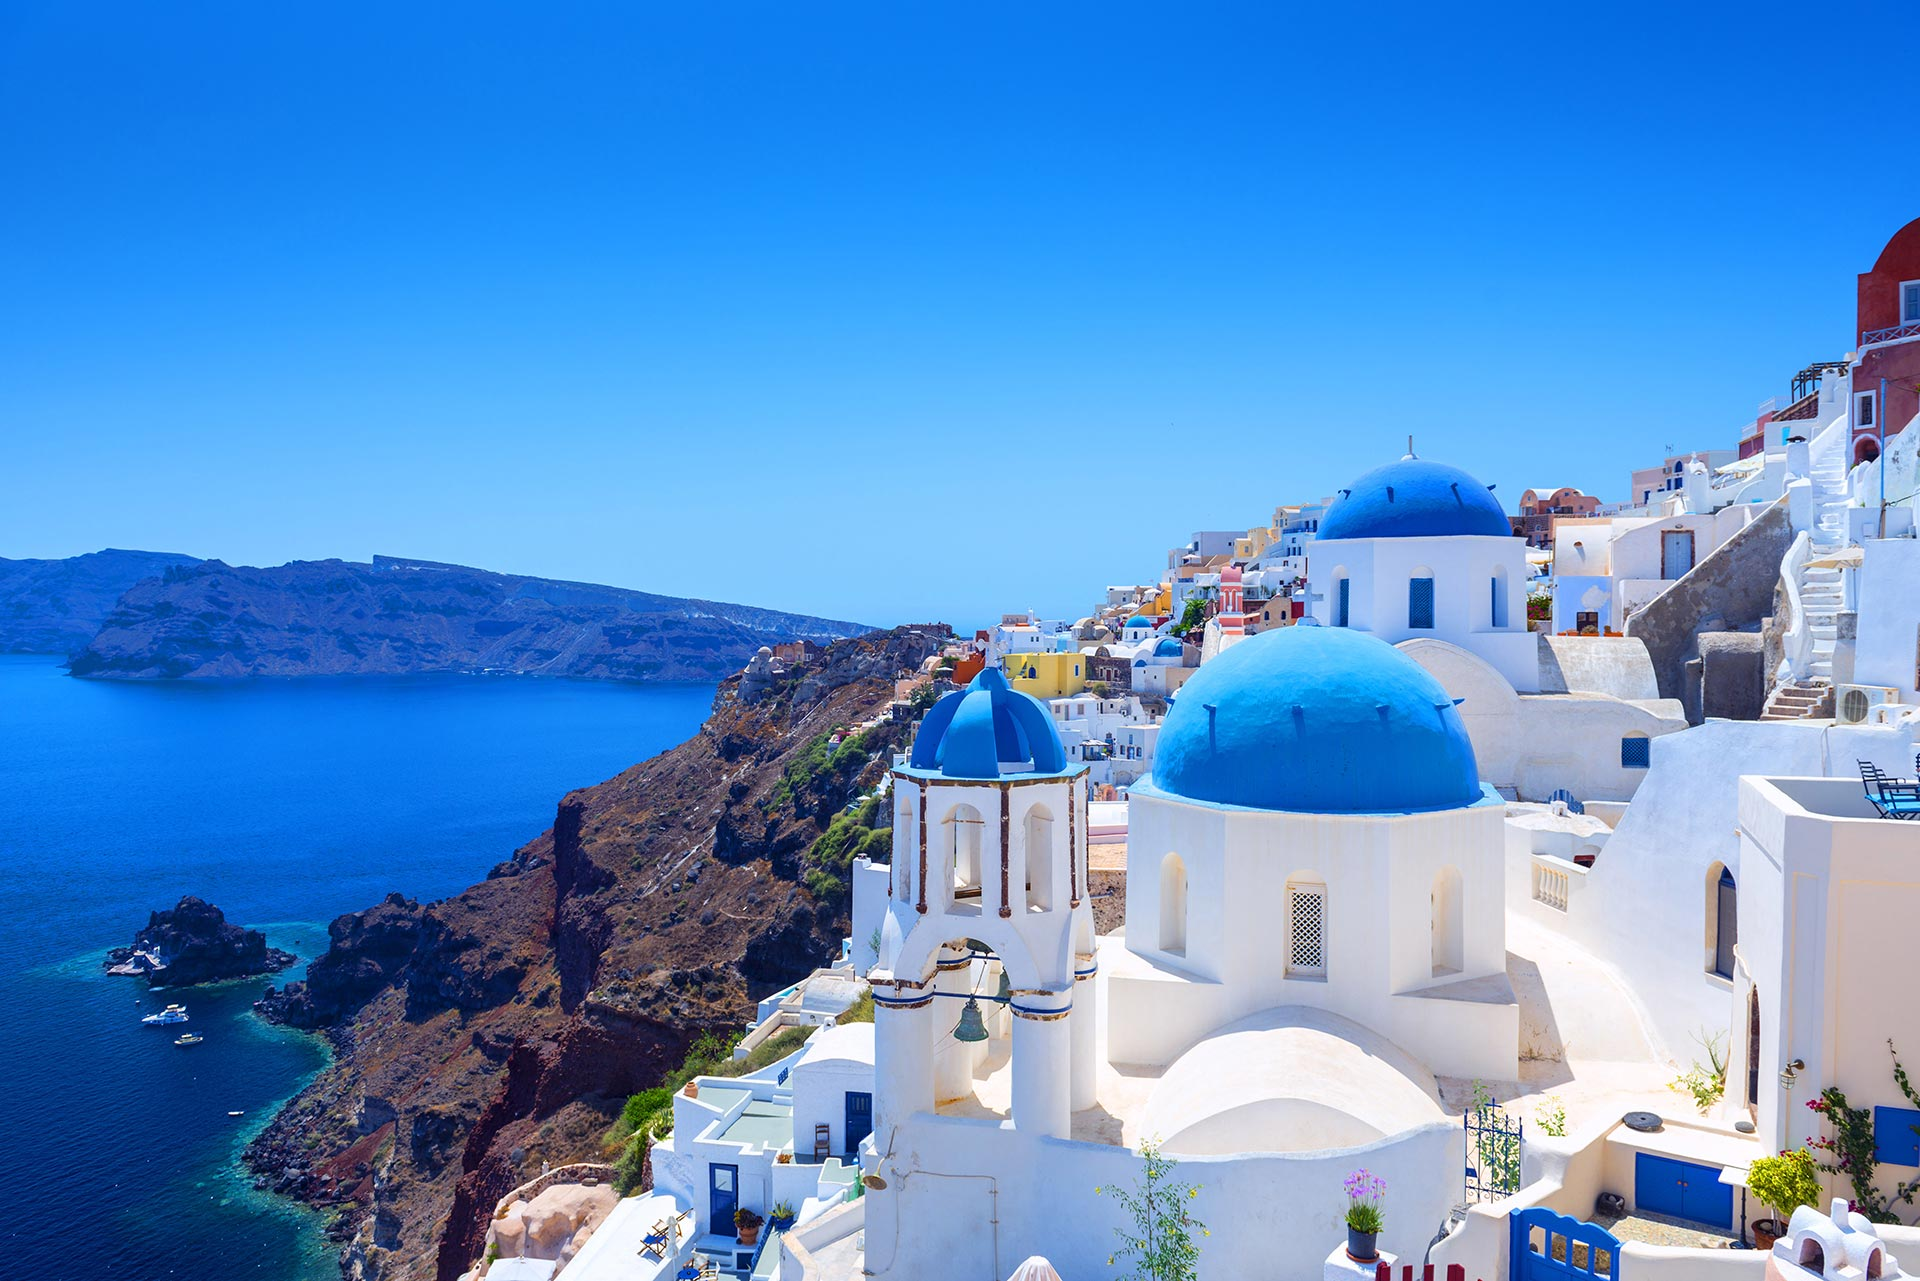 FIND A PLACE AND GET LOST: A SUMMER IN SANTORINI